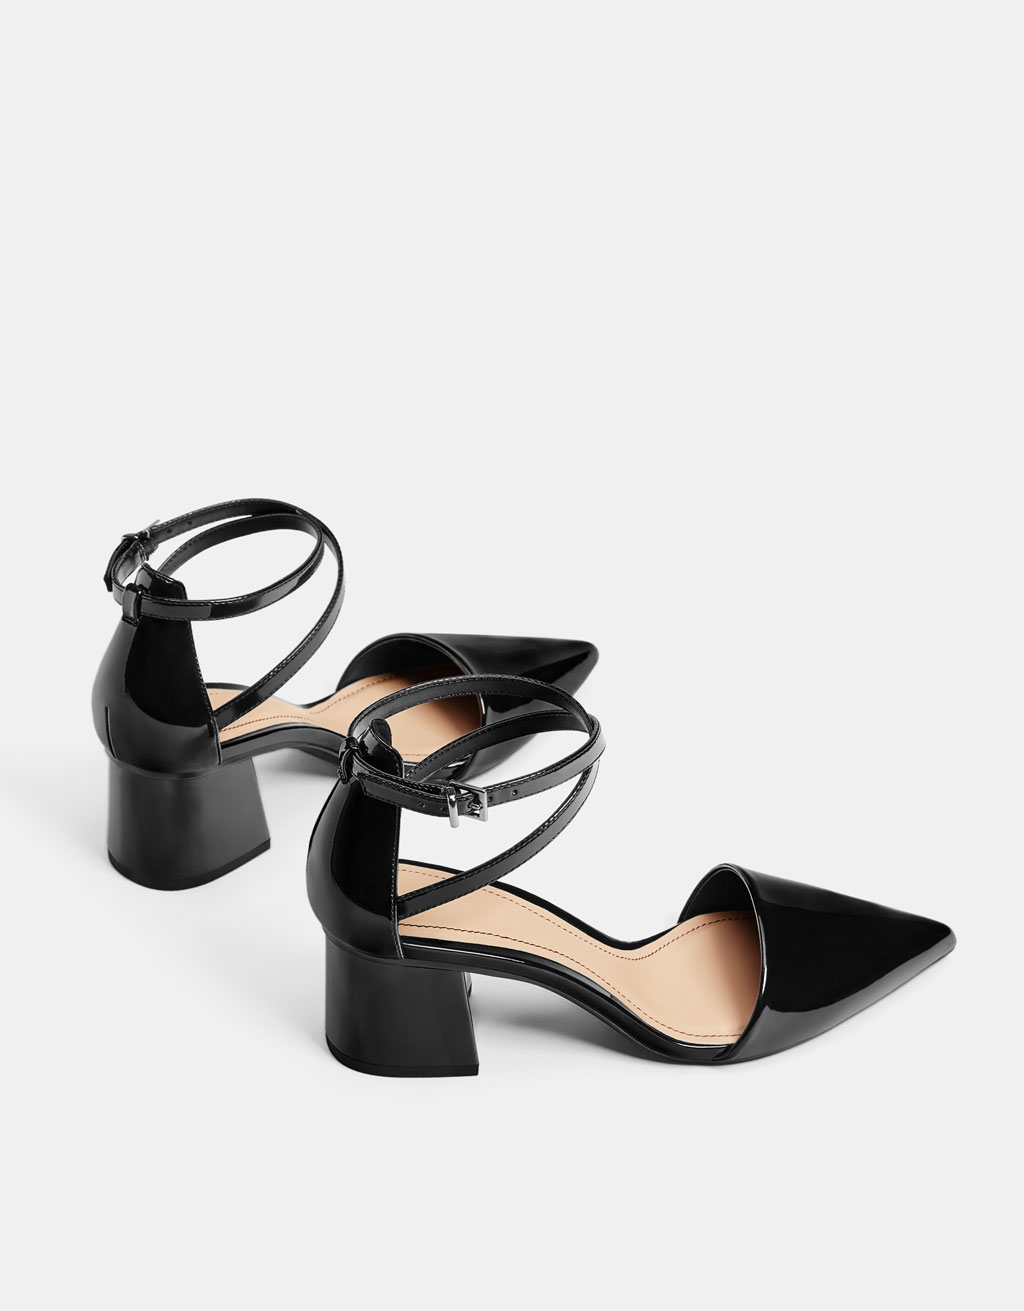 Faux patent leather mid-heel shoes